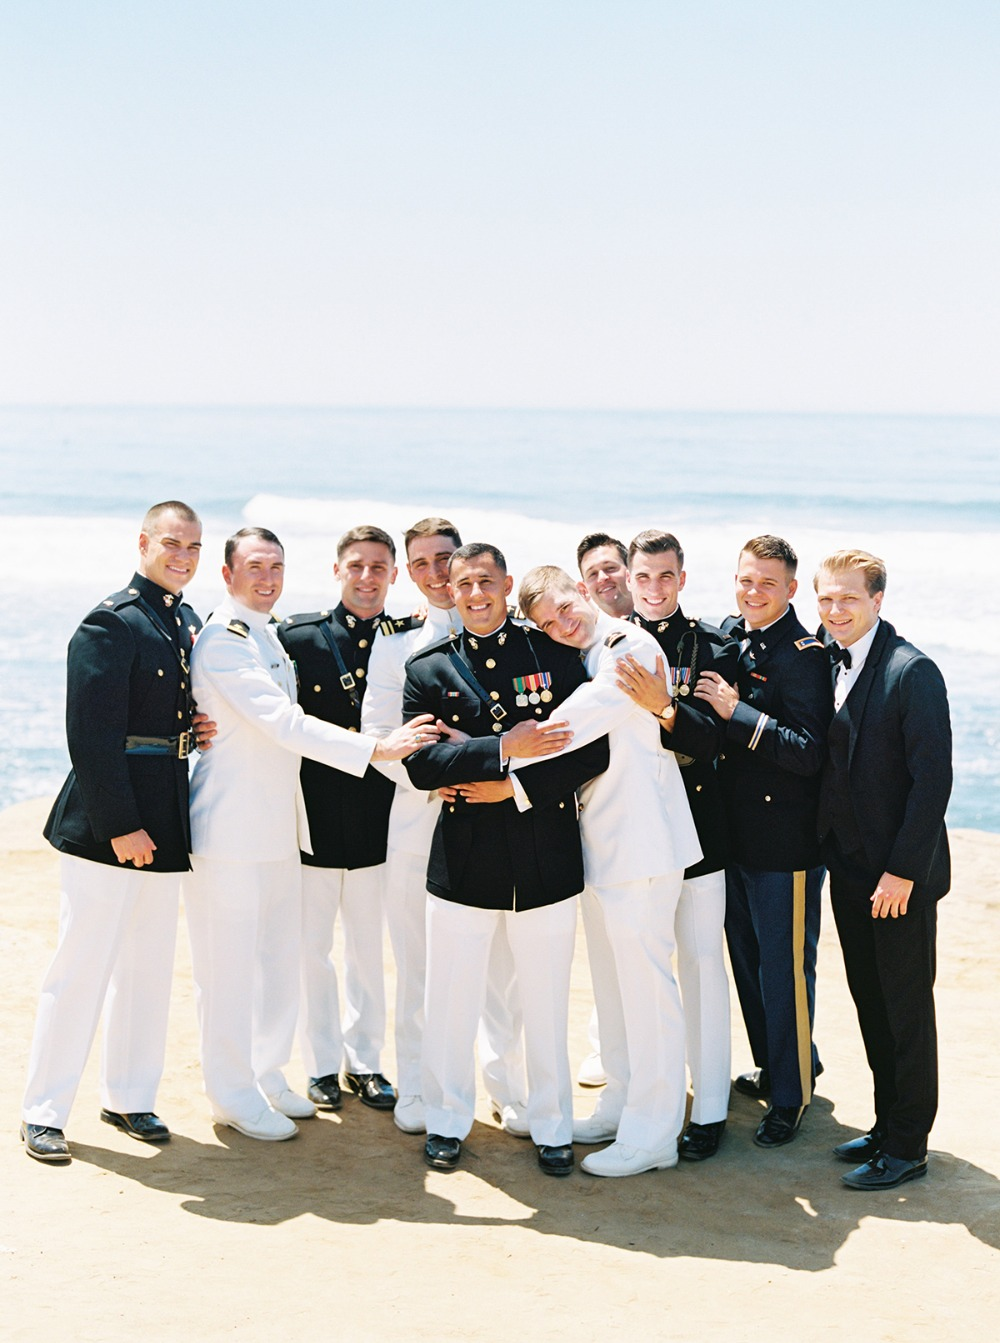 military dress groomsmen